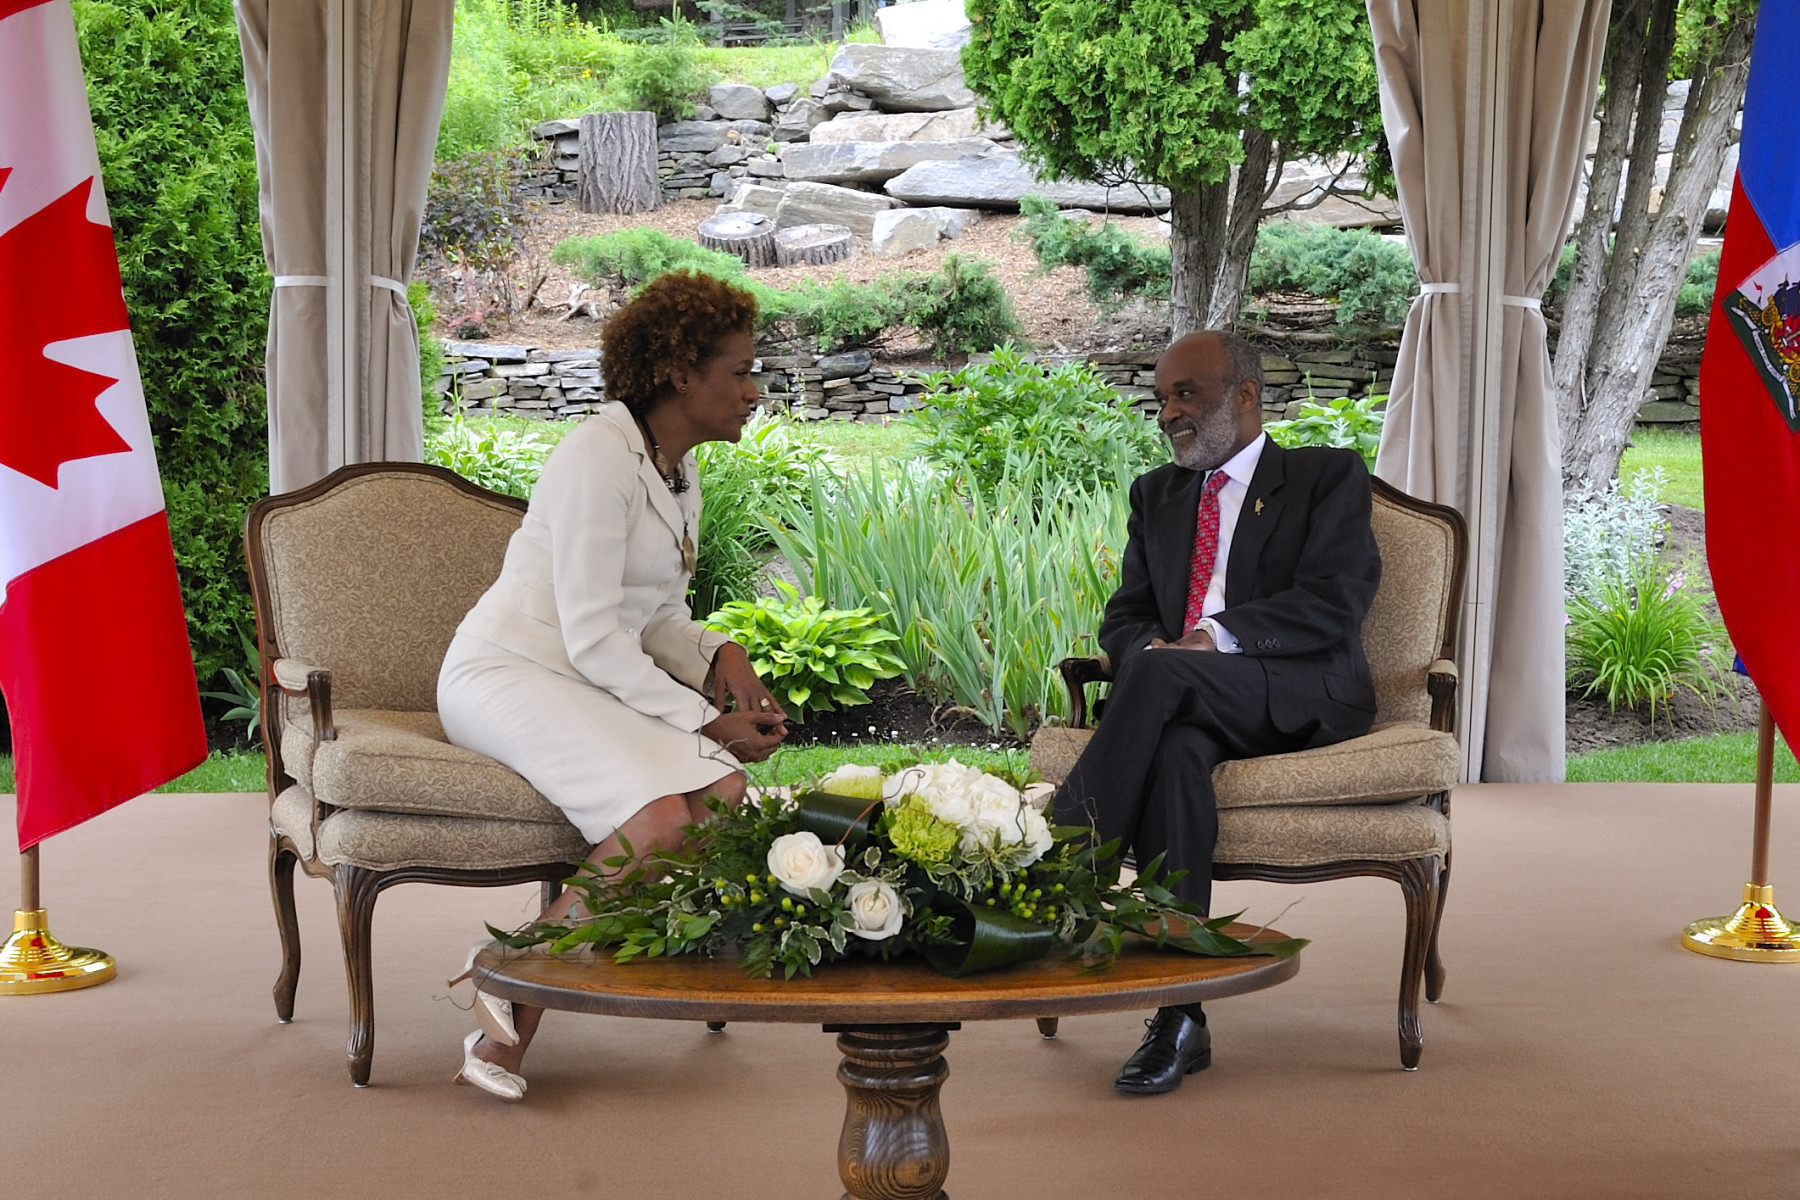 The Governor General met with His Excellency René Préval, President of the Republic of Haiti in Huntsville.